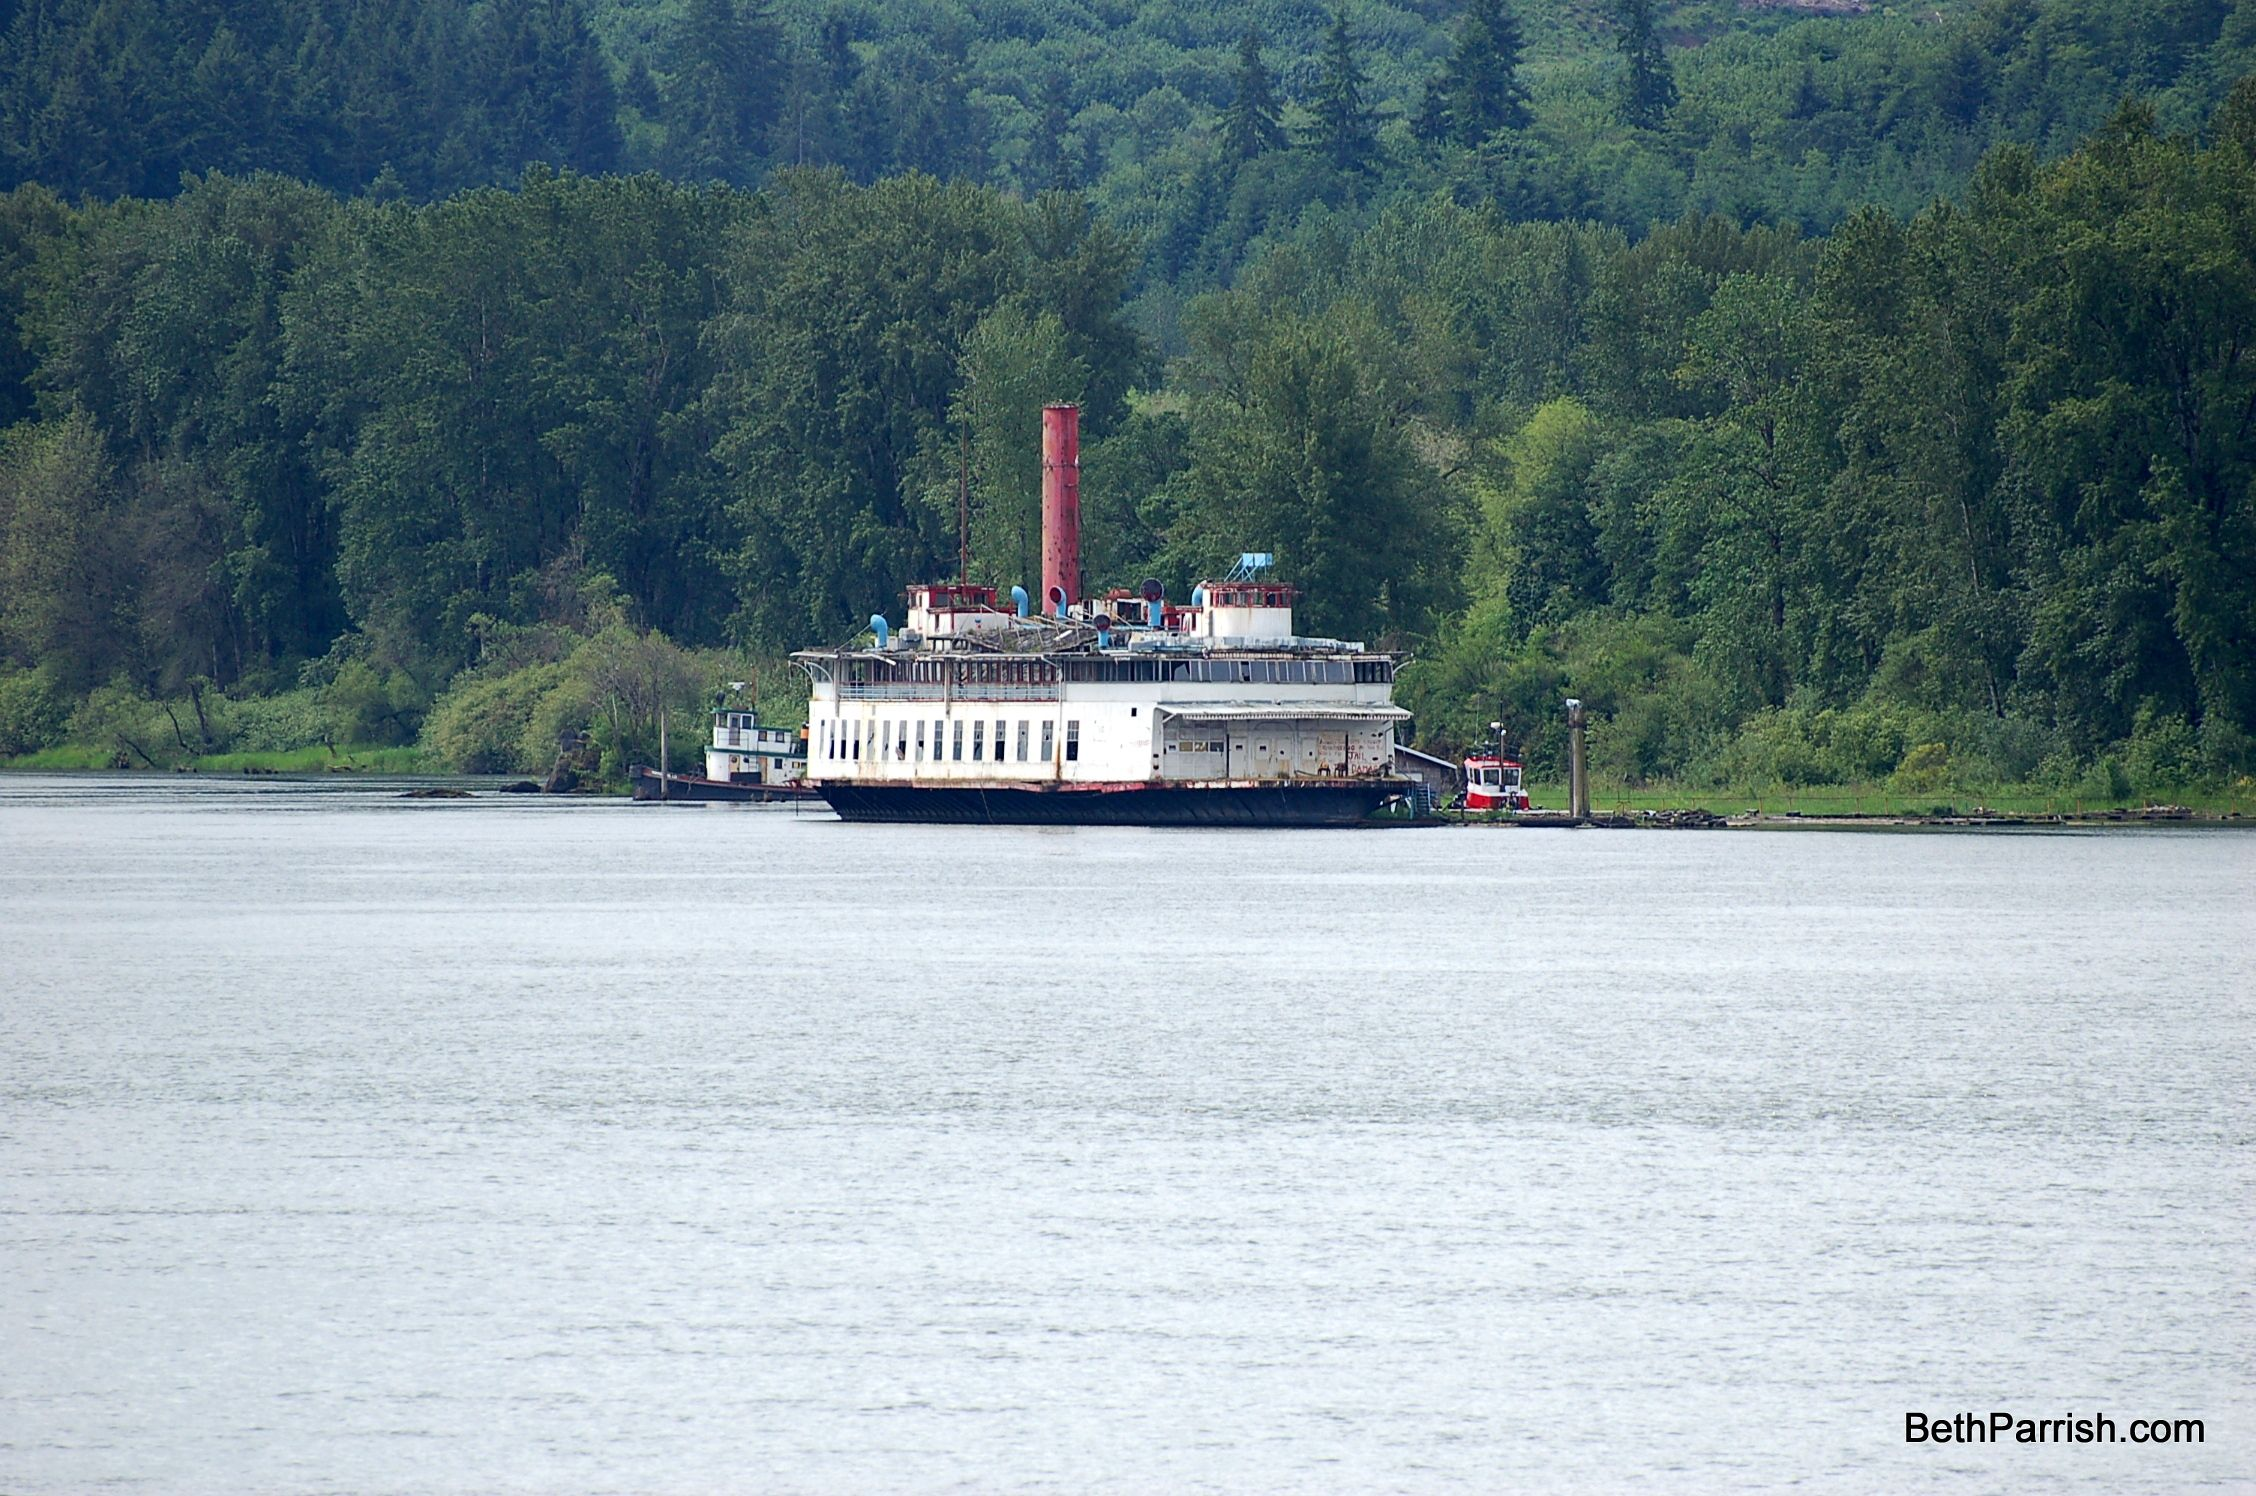 Abandoned boat on the Columbia River near